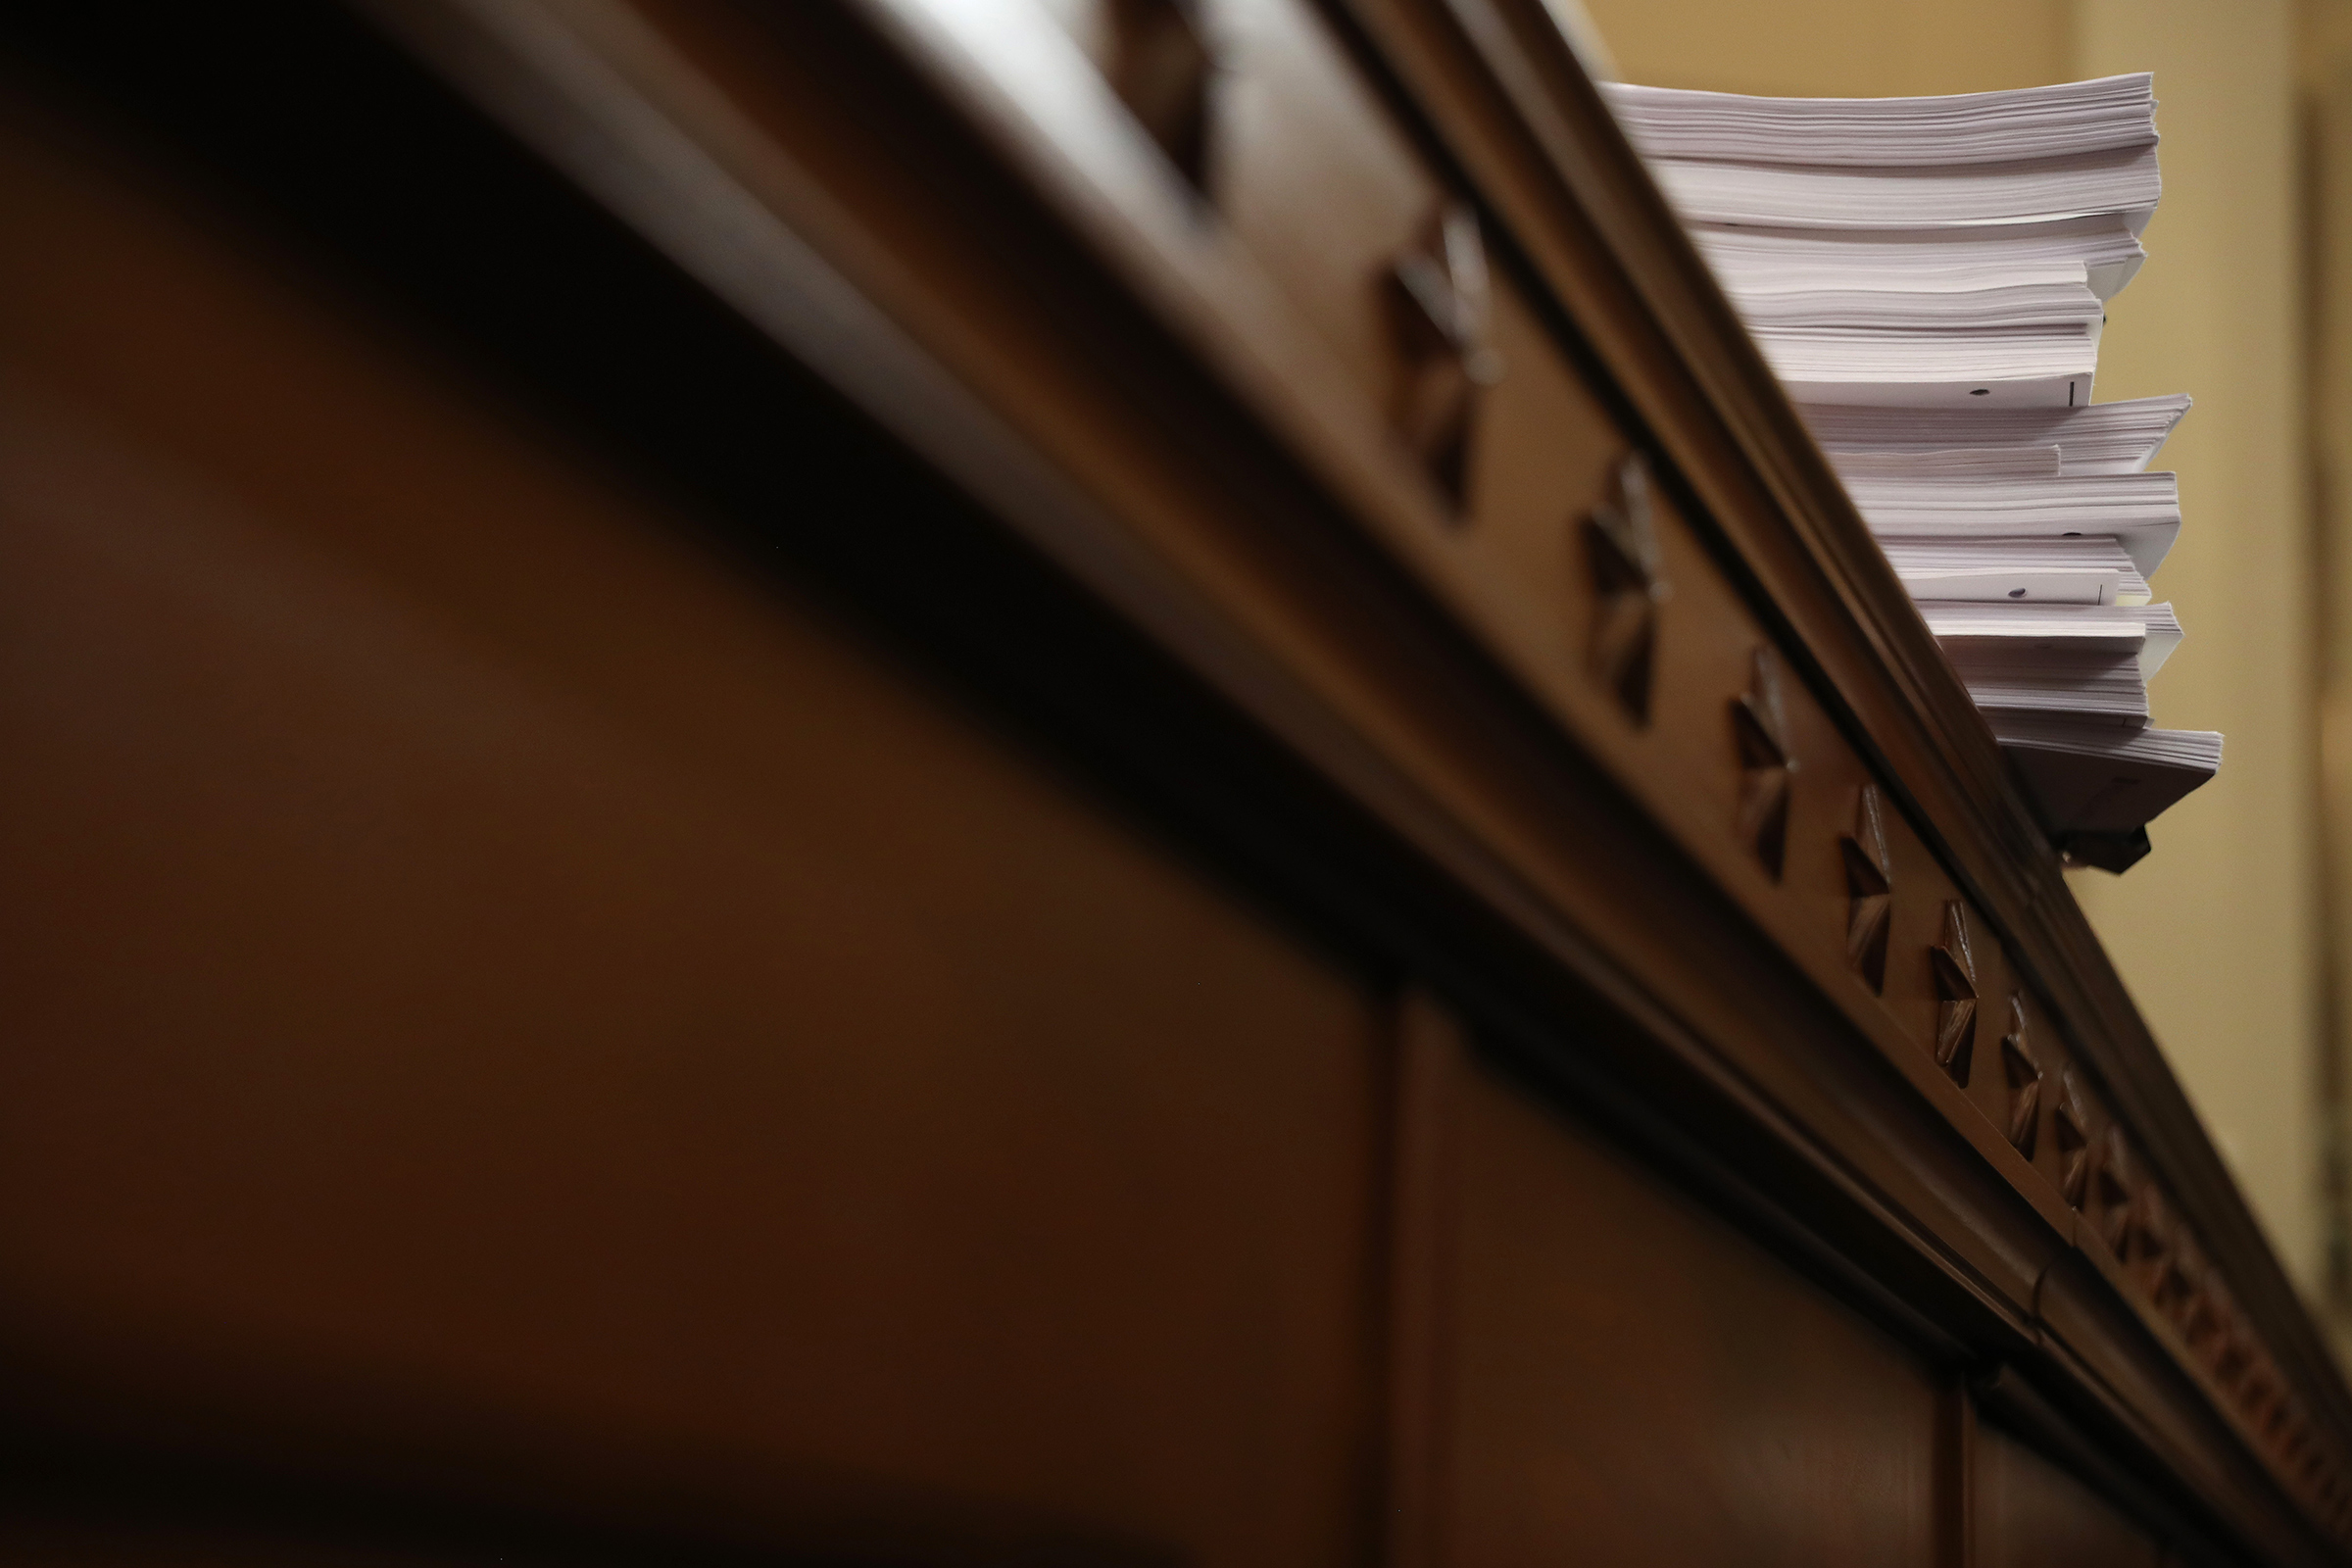 A stack of transcrips of depositions are shown during the third day of open hearings in the impeachment inquiry against President Donald Trump, Nov. 19, 2019.